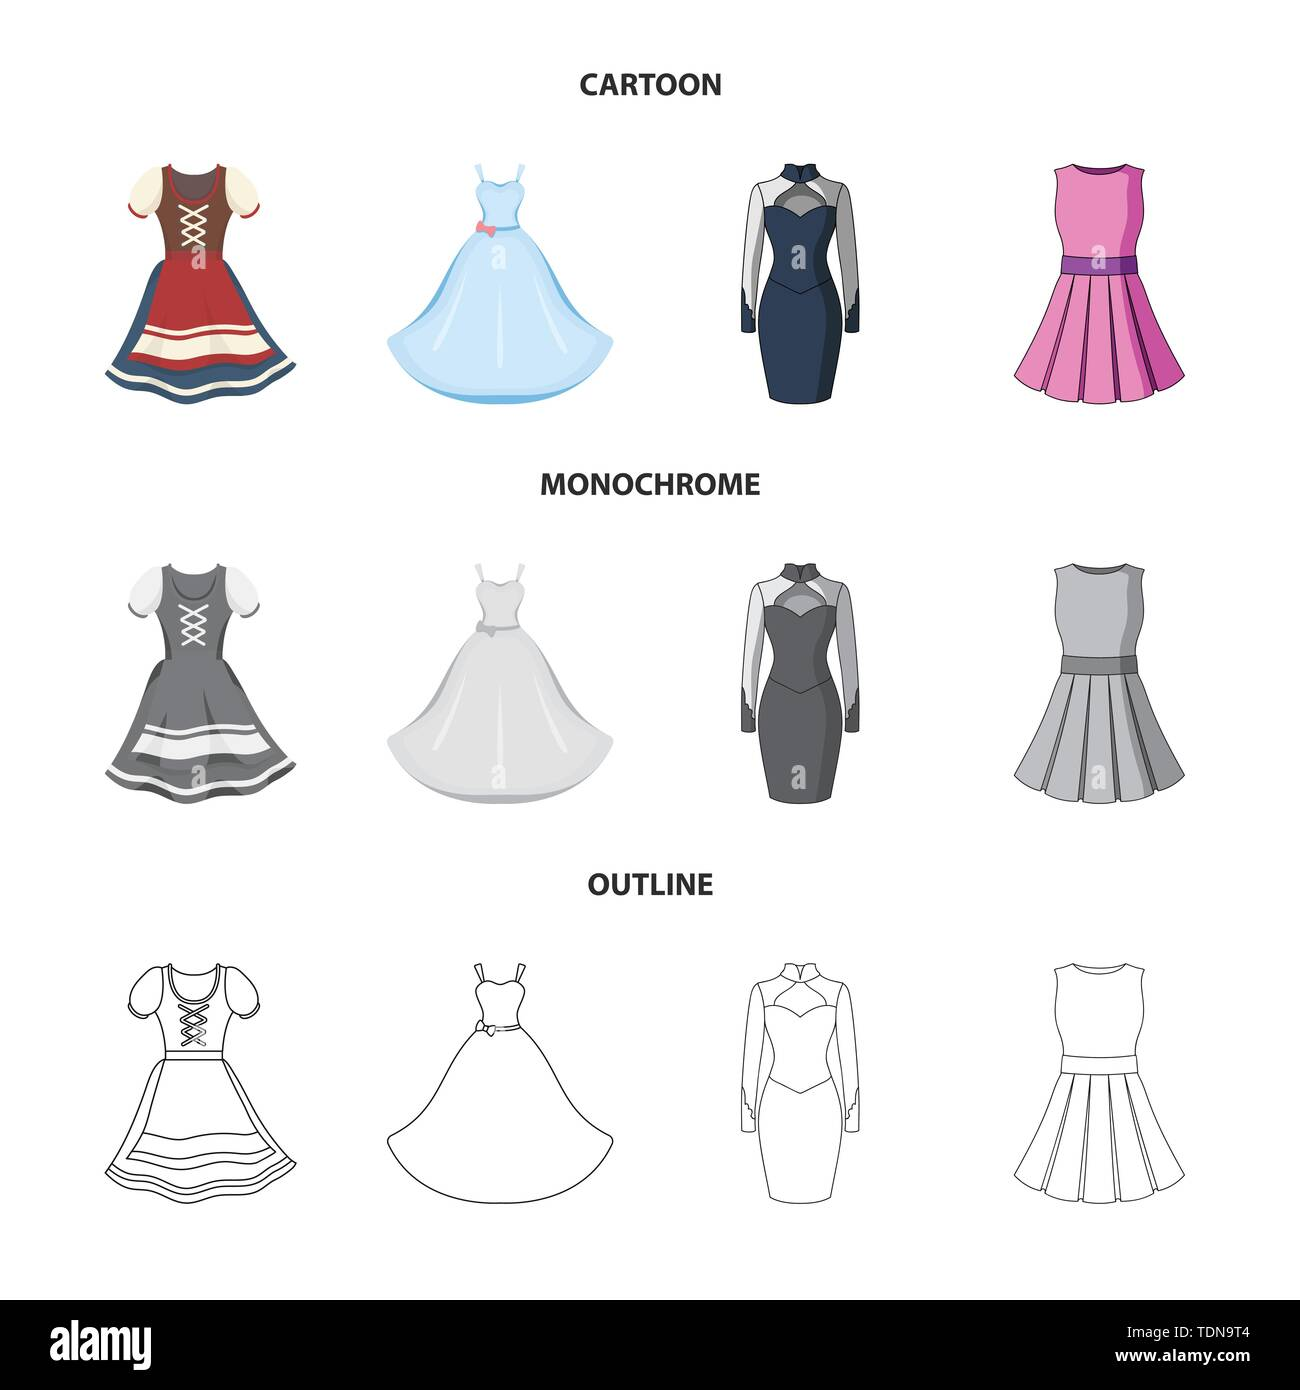 Isolated object of dress and clothes icon. Set of dress and evening stock vector illustration. - Stock Vector